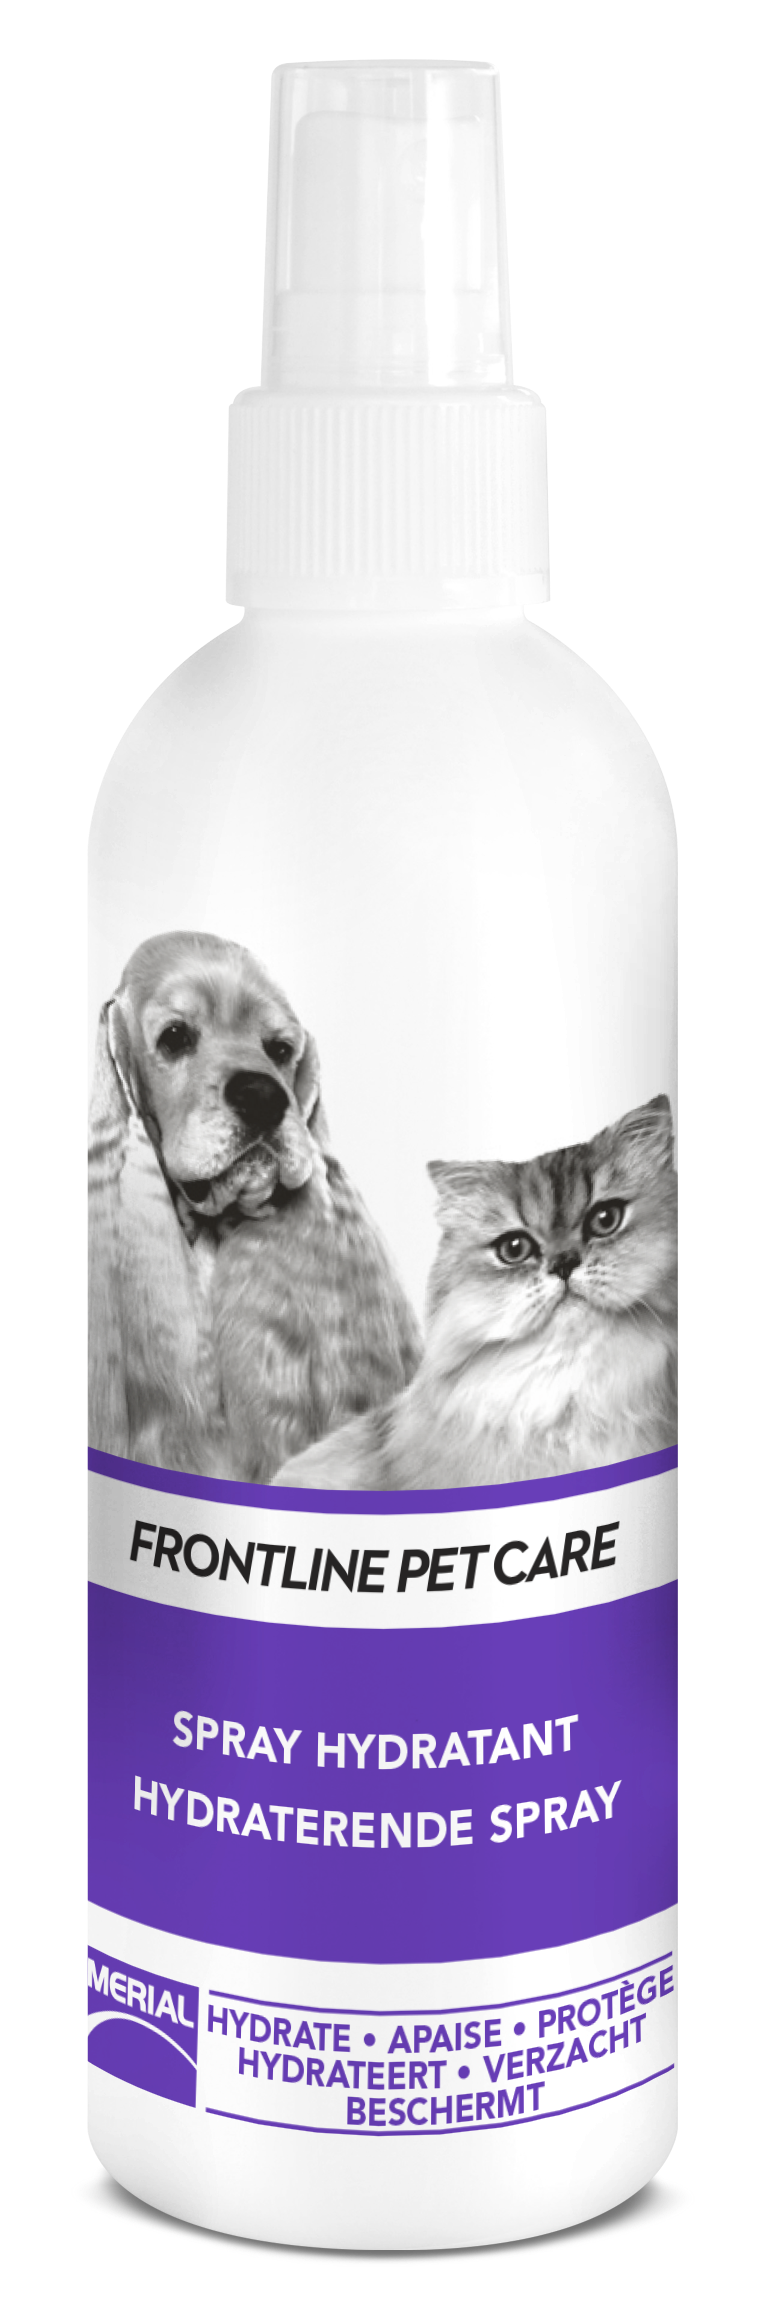 soin pelage chien chat frontline pet care